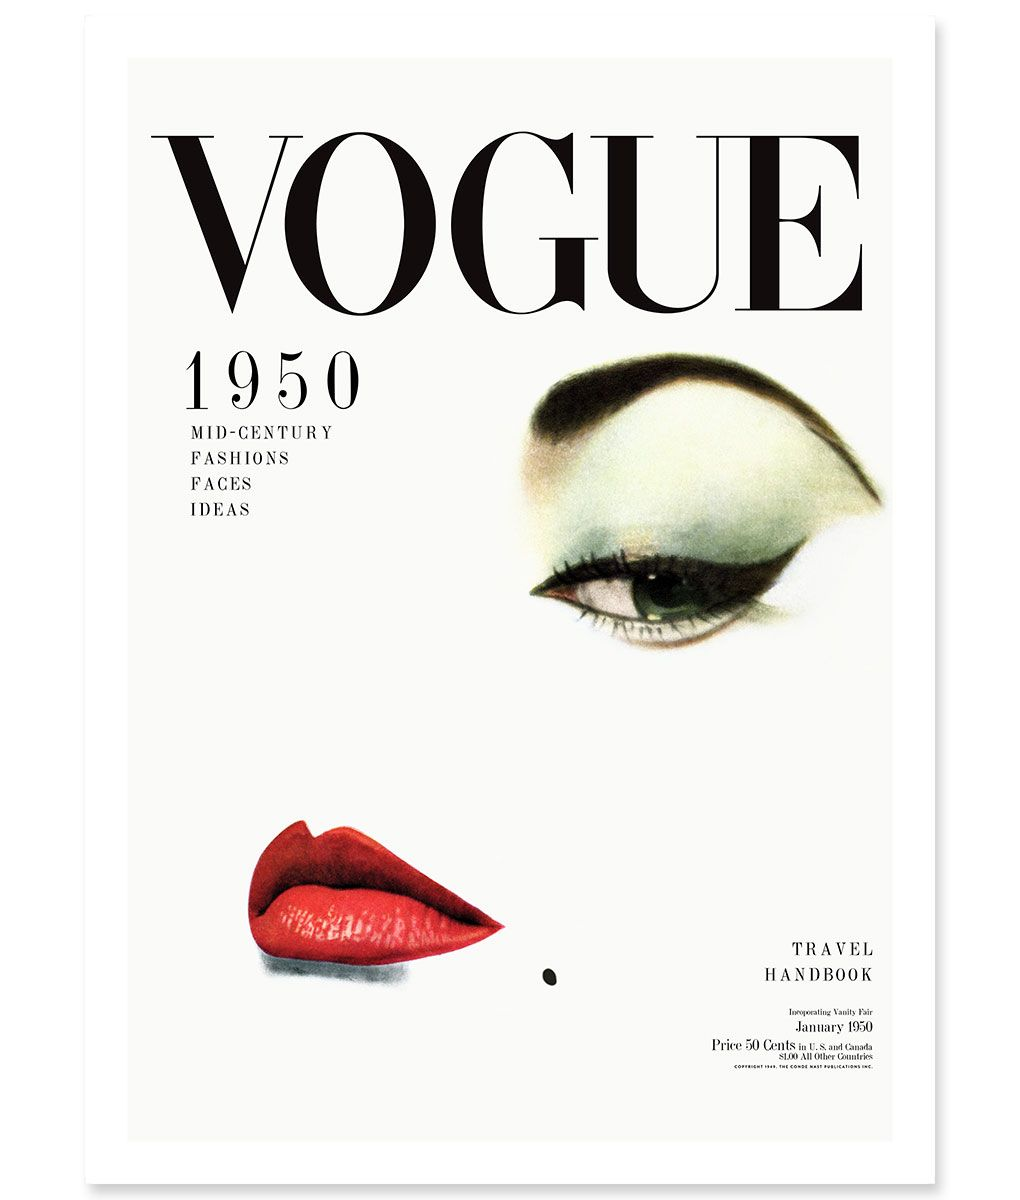 1950 S Vogue Cover Wall Art Poster Or Framed Print 41 Orchard Vogue Covers Vogue Covers Art Vogue